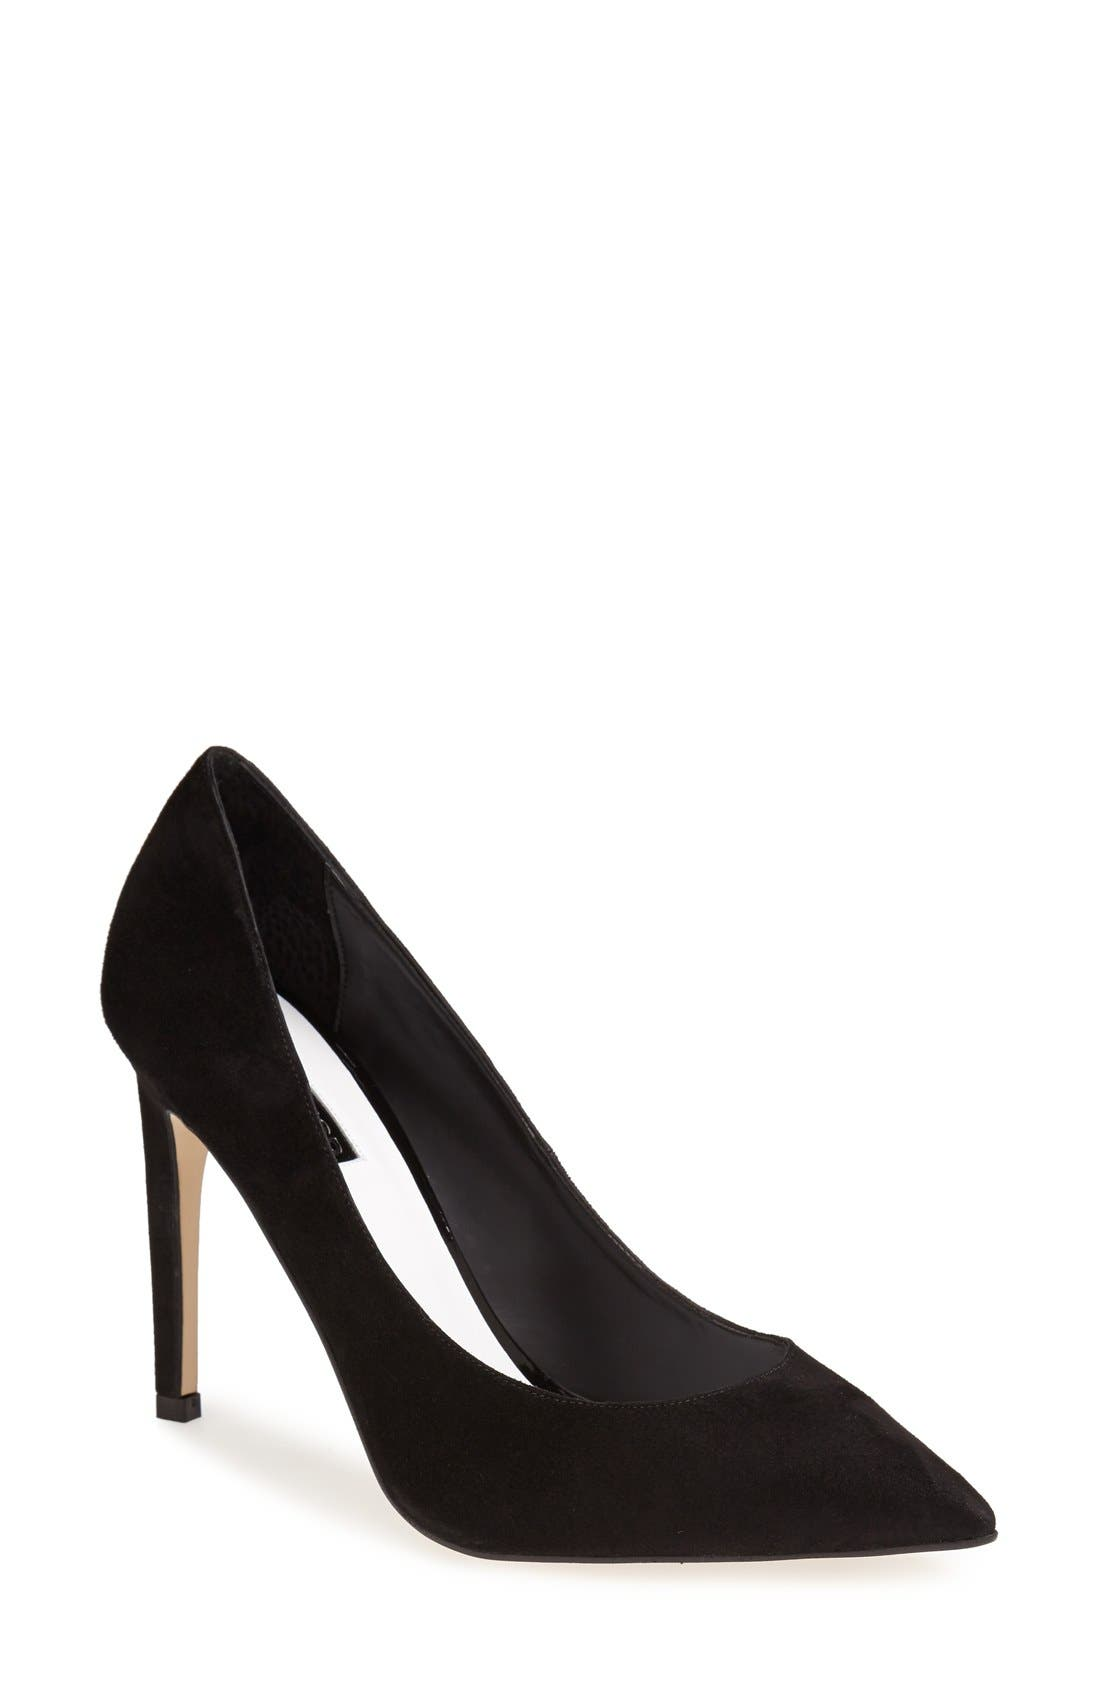 'Glory' Pointy Toe Suede Pump,                             Main thumbnail 1, color,                             001